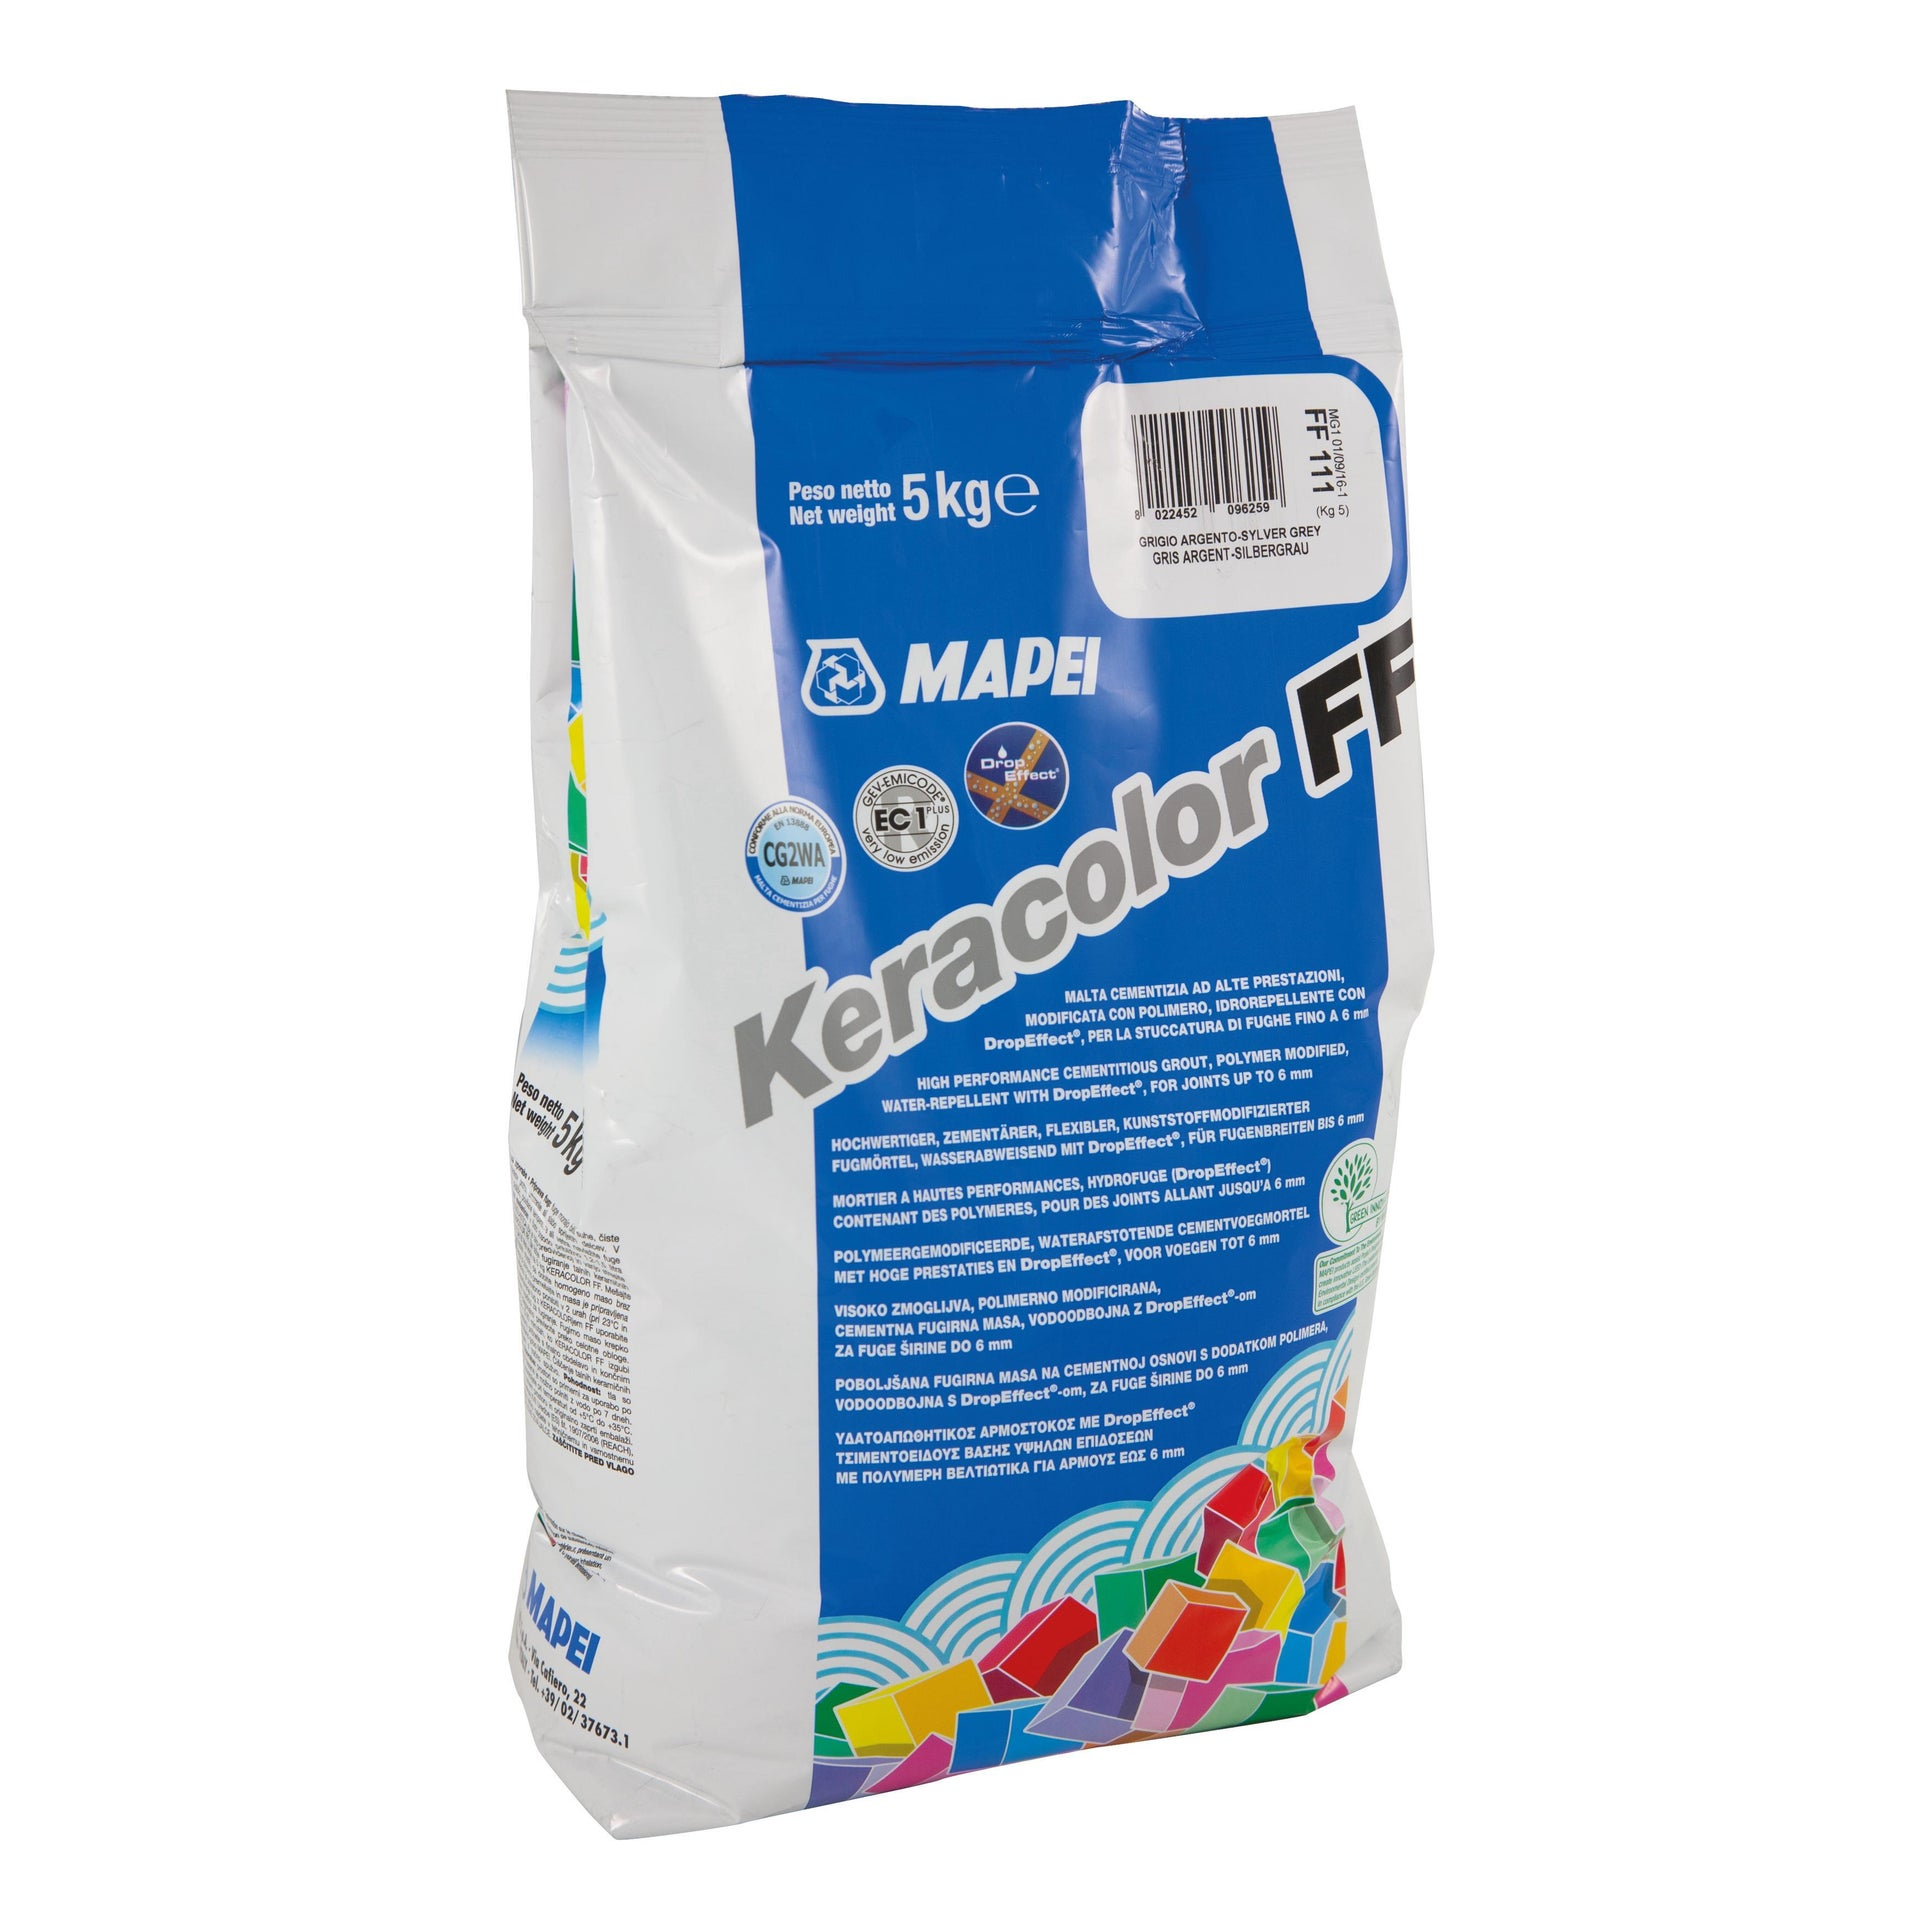 Stucco in polvere Keracolor FF MAPEI 5 kg bianco